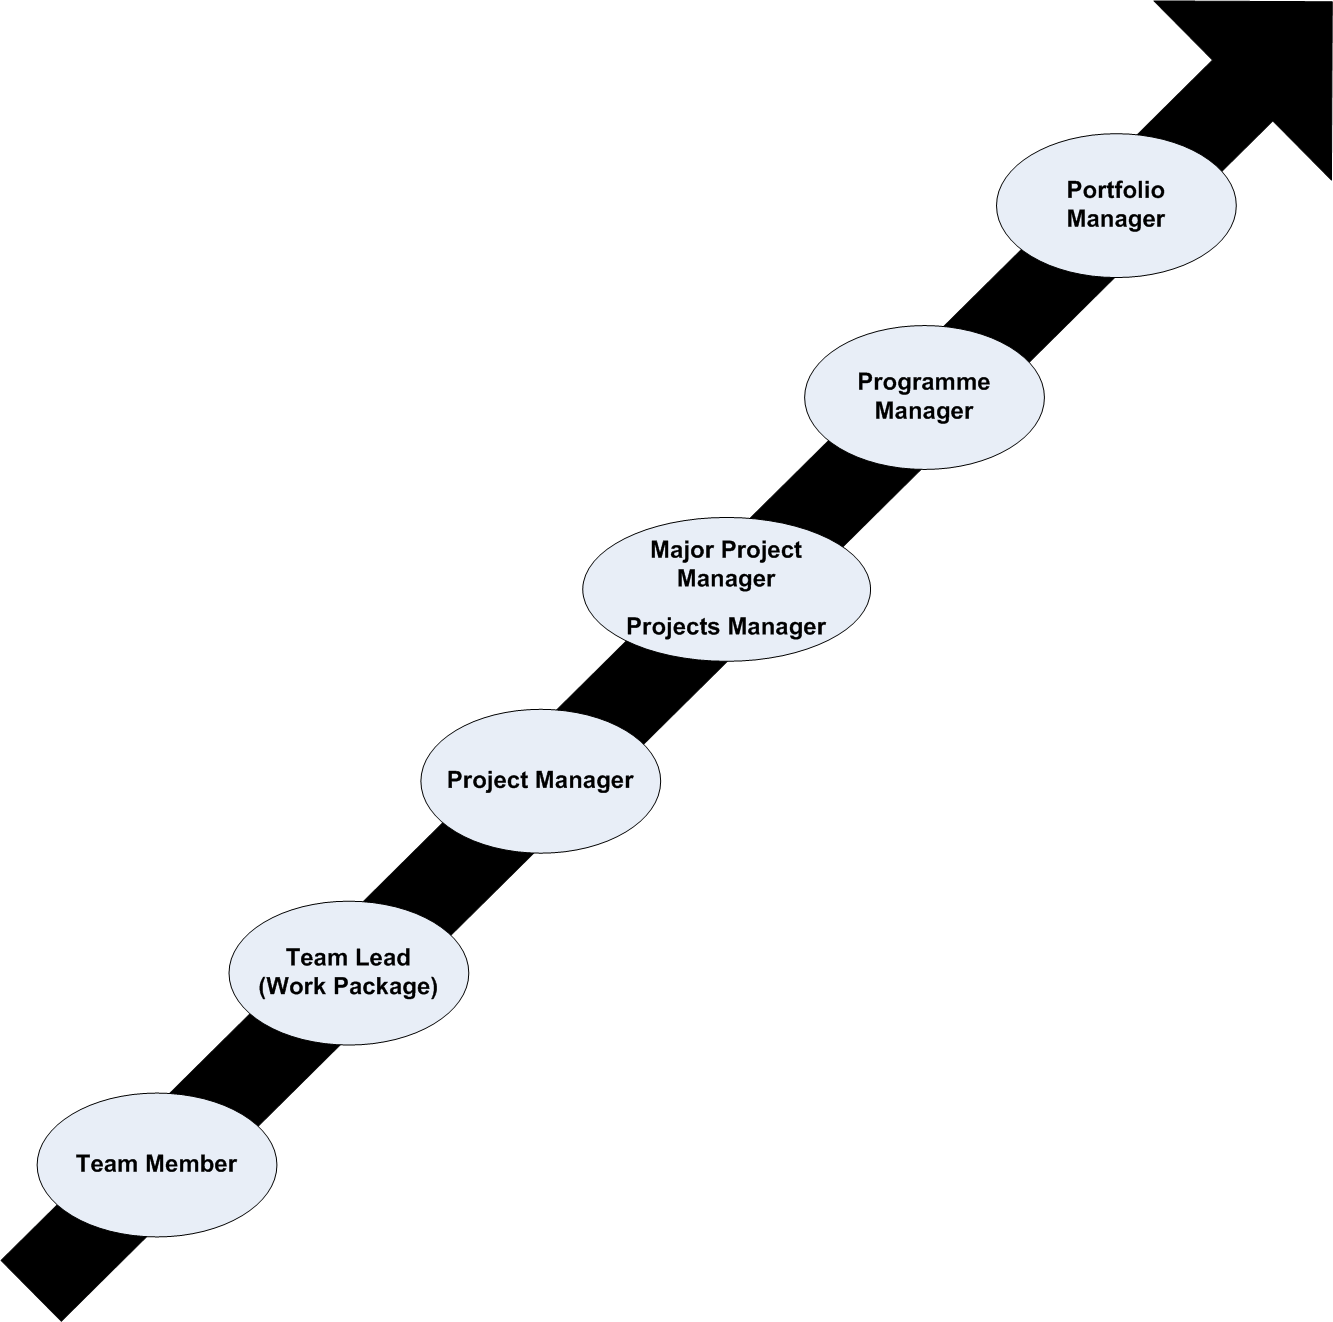 Career Paths for Those Interested in Project Management